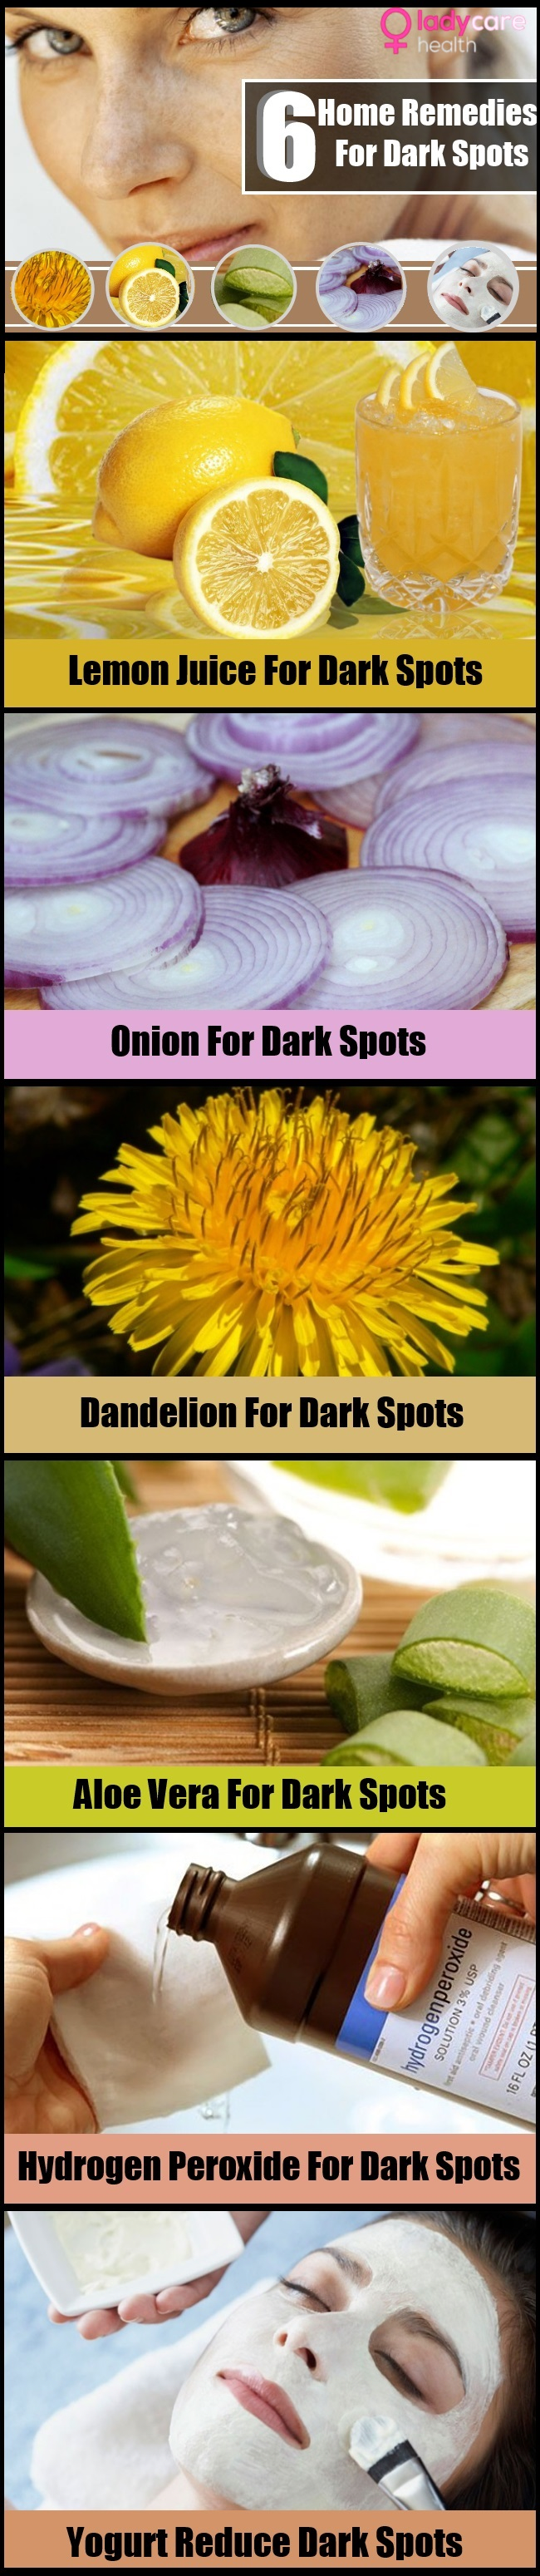 Home Remedies For Dark Spots On The Face